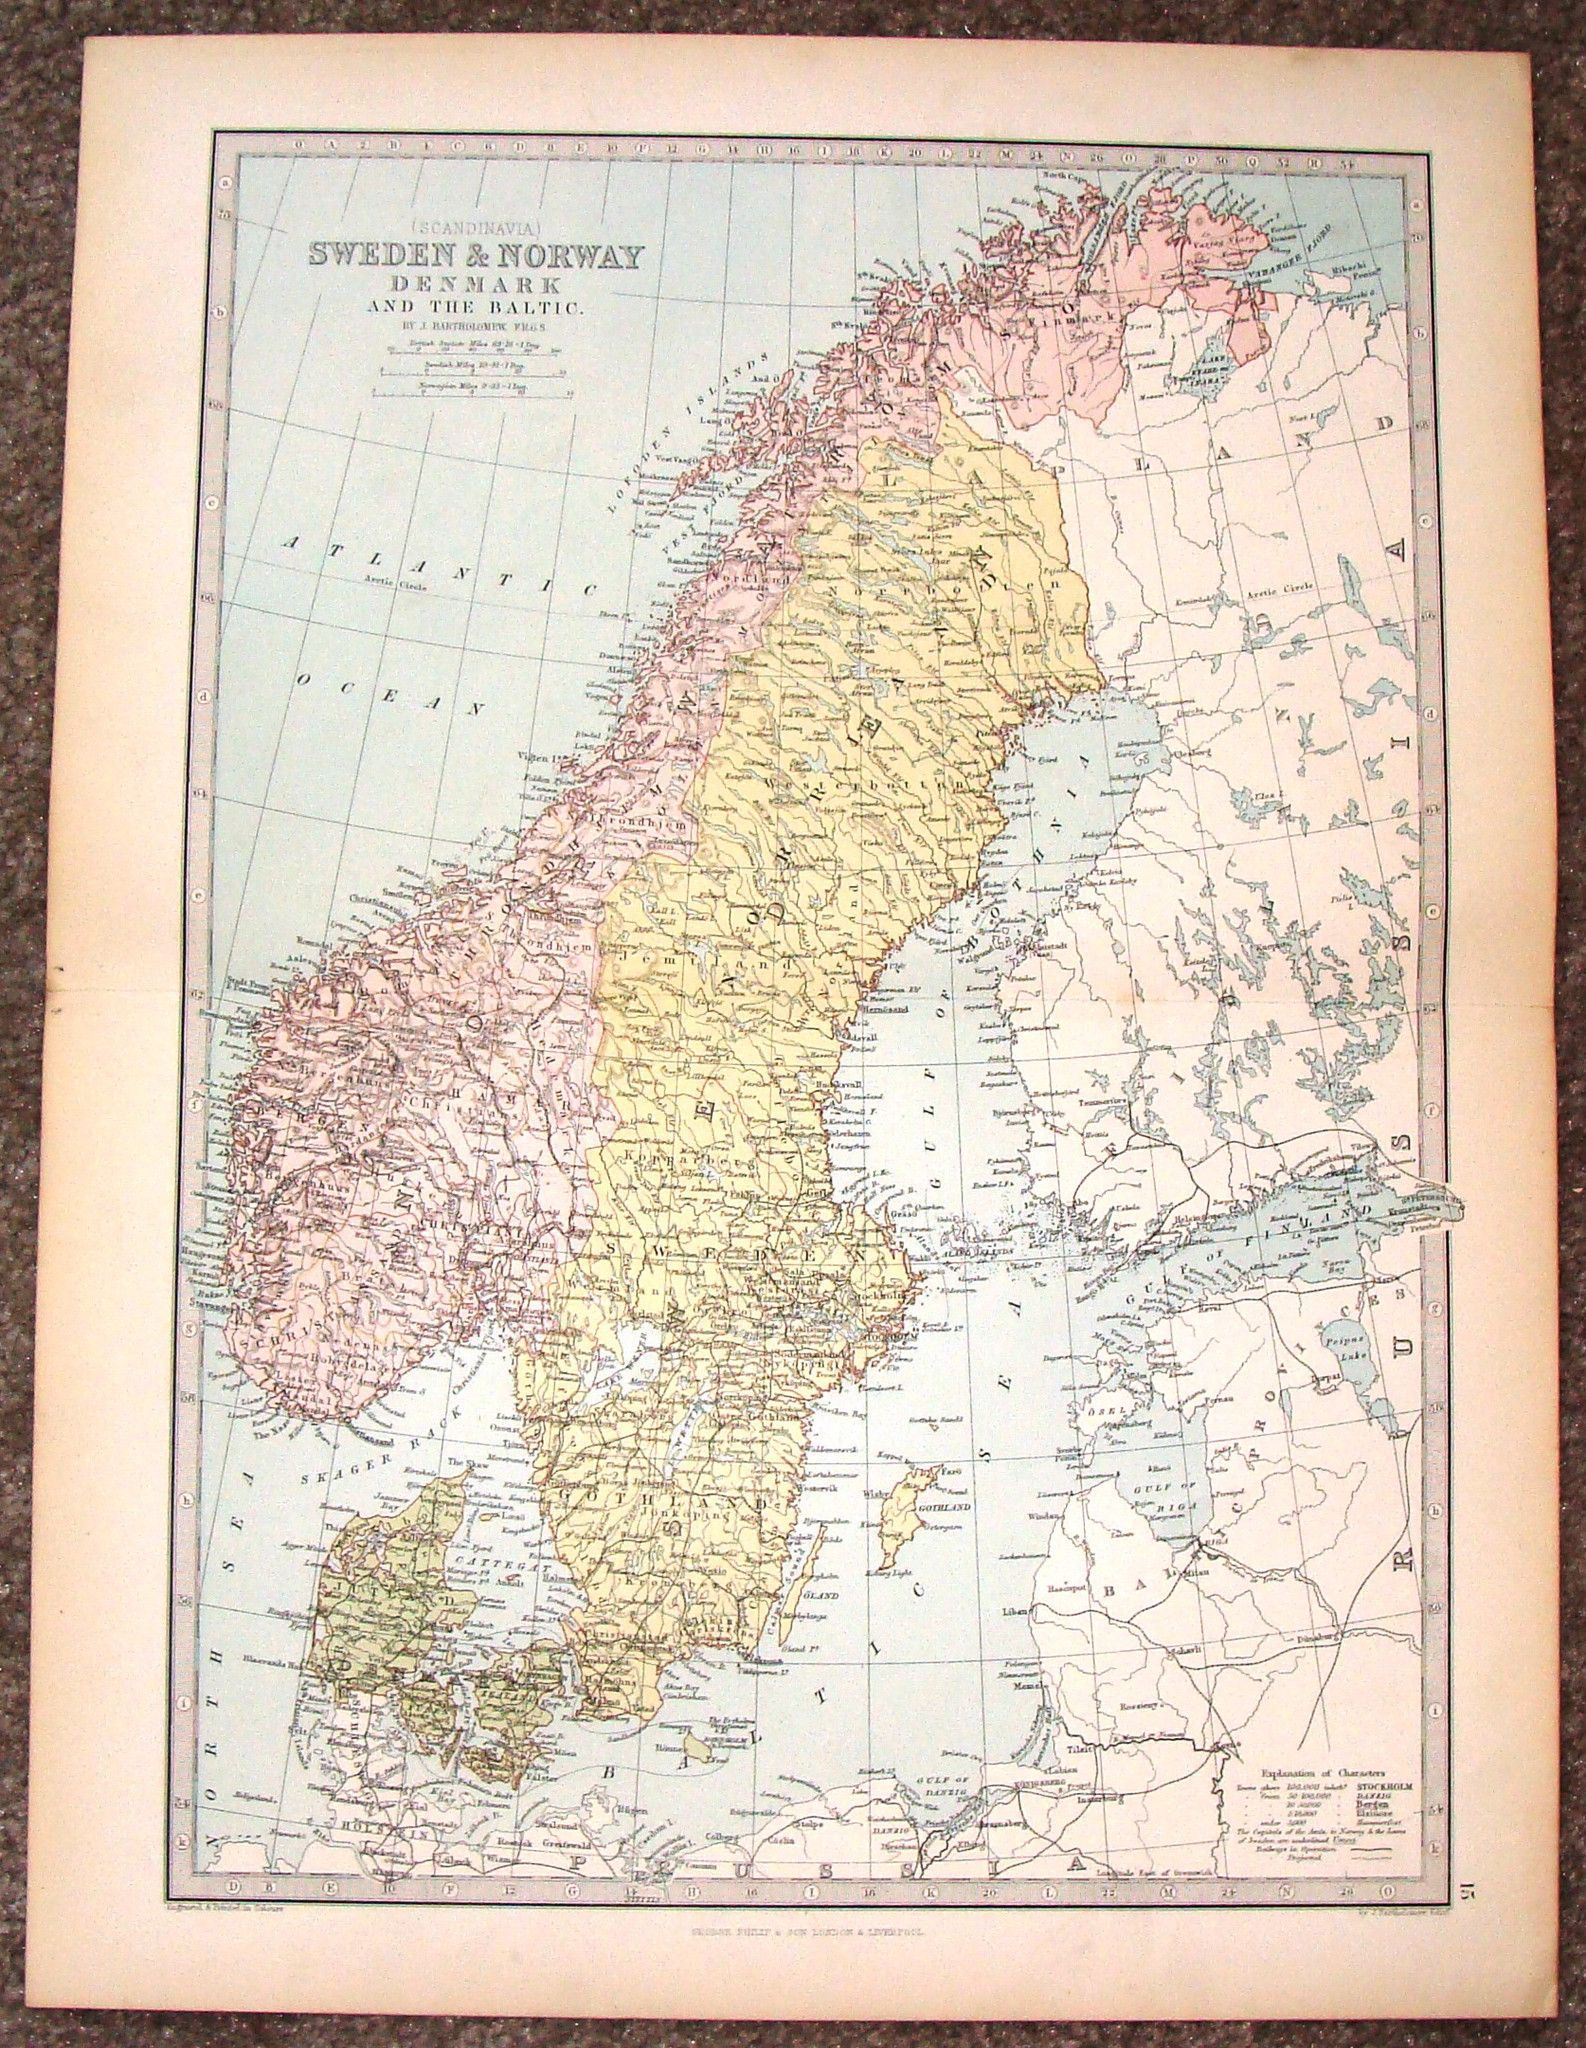 Antique map sweden norway denmark and the baltic by fine colored lithograph map by j bartholomew published by george philip son of london in about 1875 the map is in very good condition gumiabroncs Images